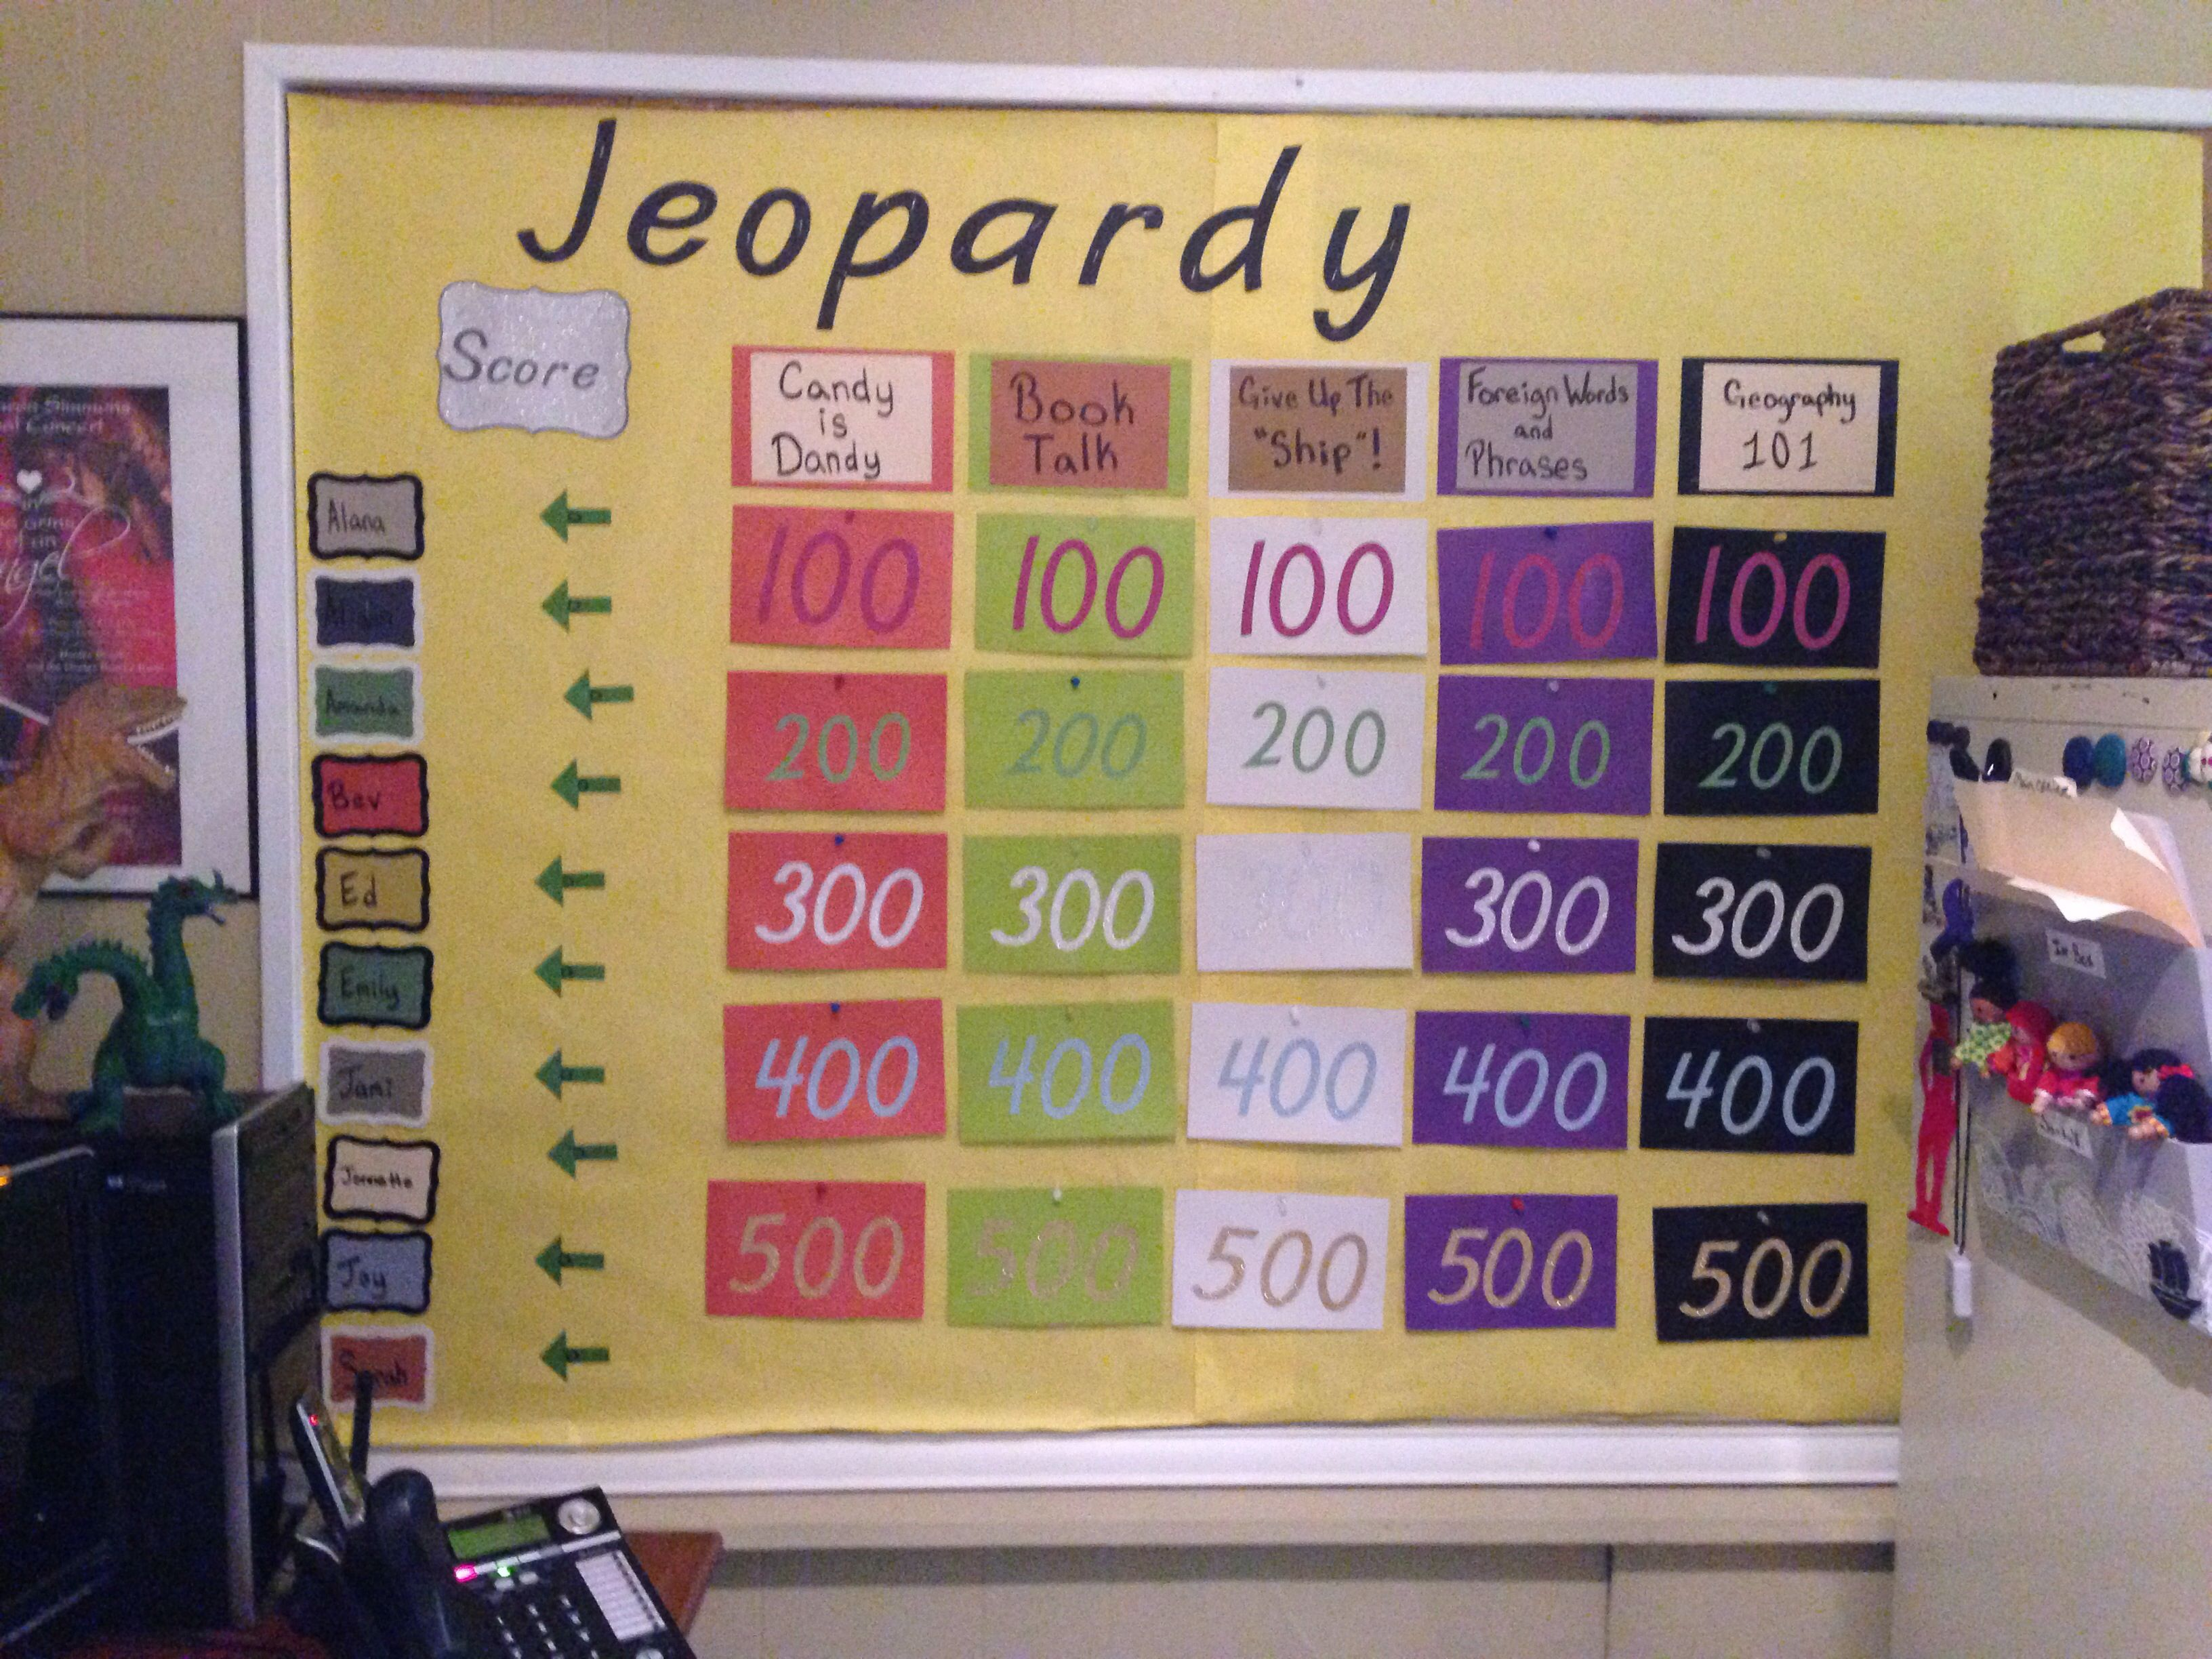 Game for coworkers - A Friendly Game Of Kids Jeopardy Each Round Played